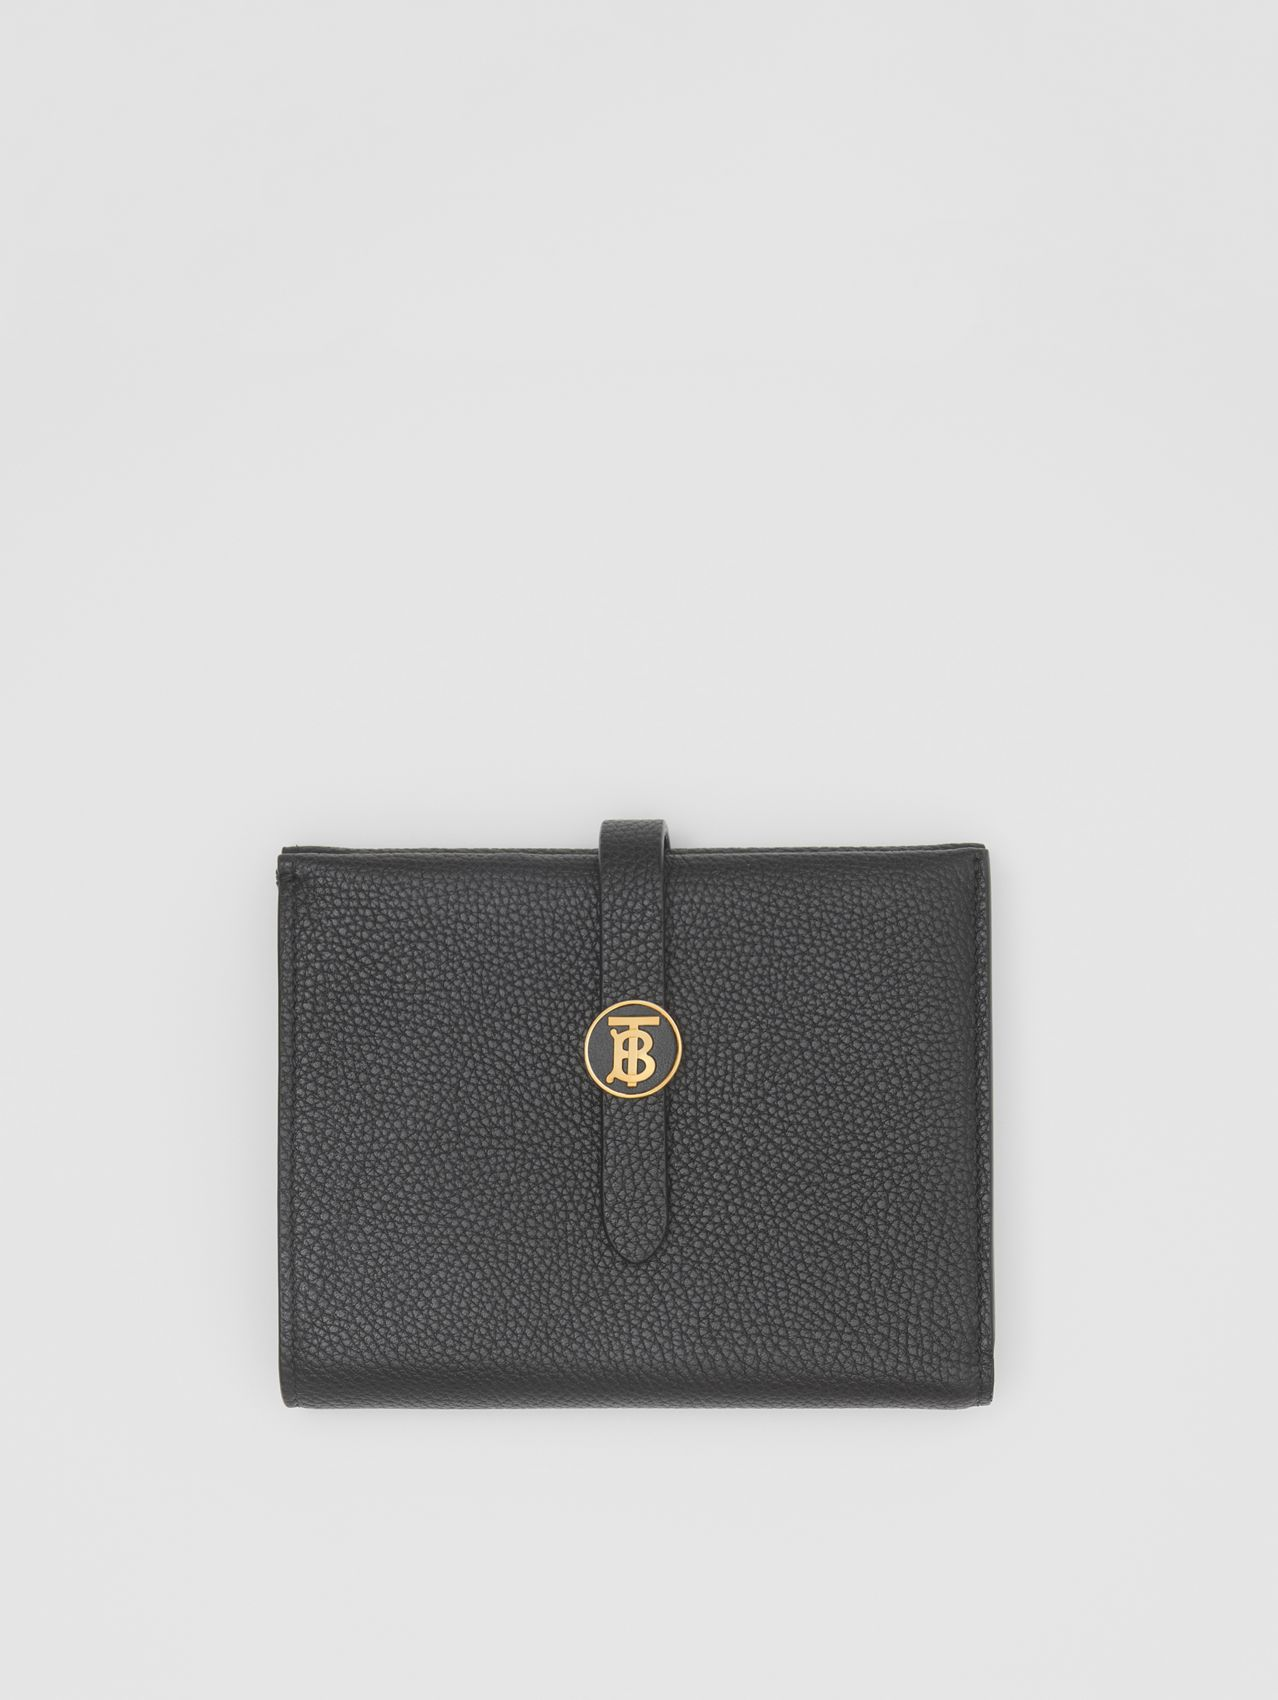 Monogram Motif Grainy Leather Folding Wallet in Black